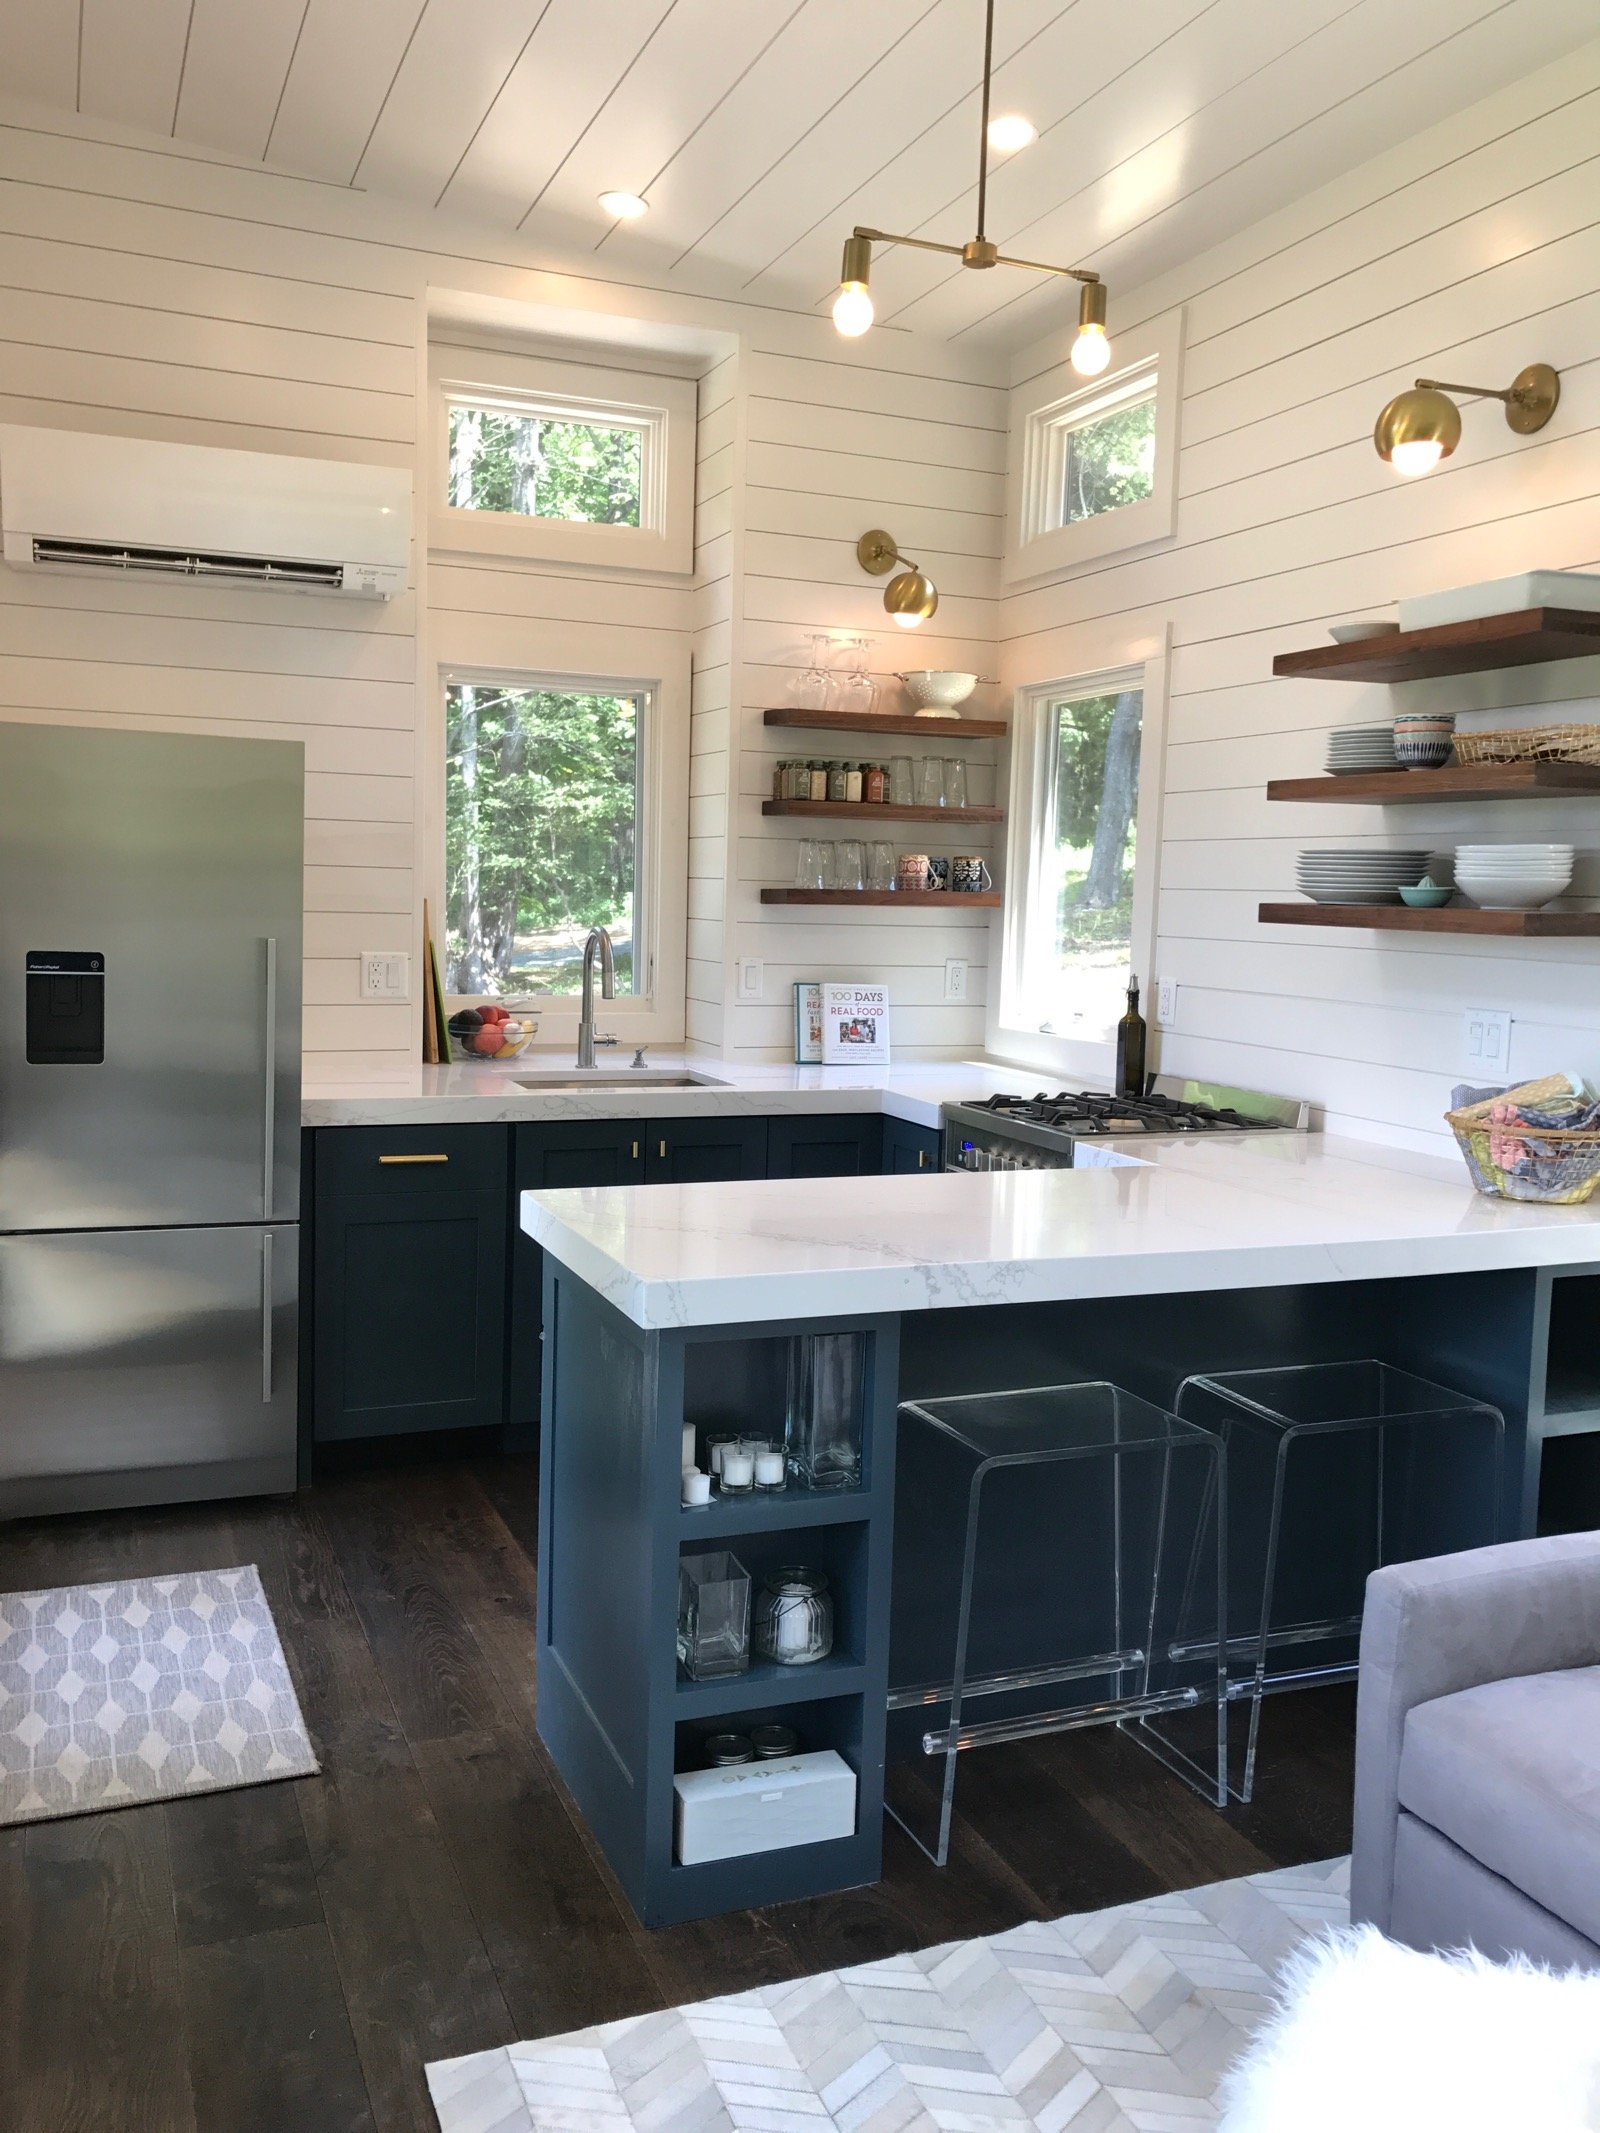 Jeff & Joseph's Silver Lake Bungalow | Bungalow kitchen ...